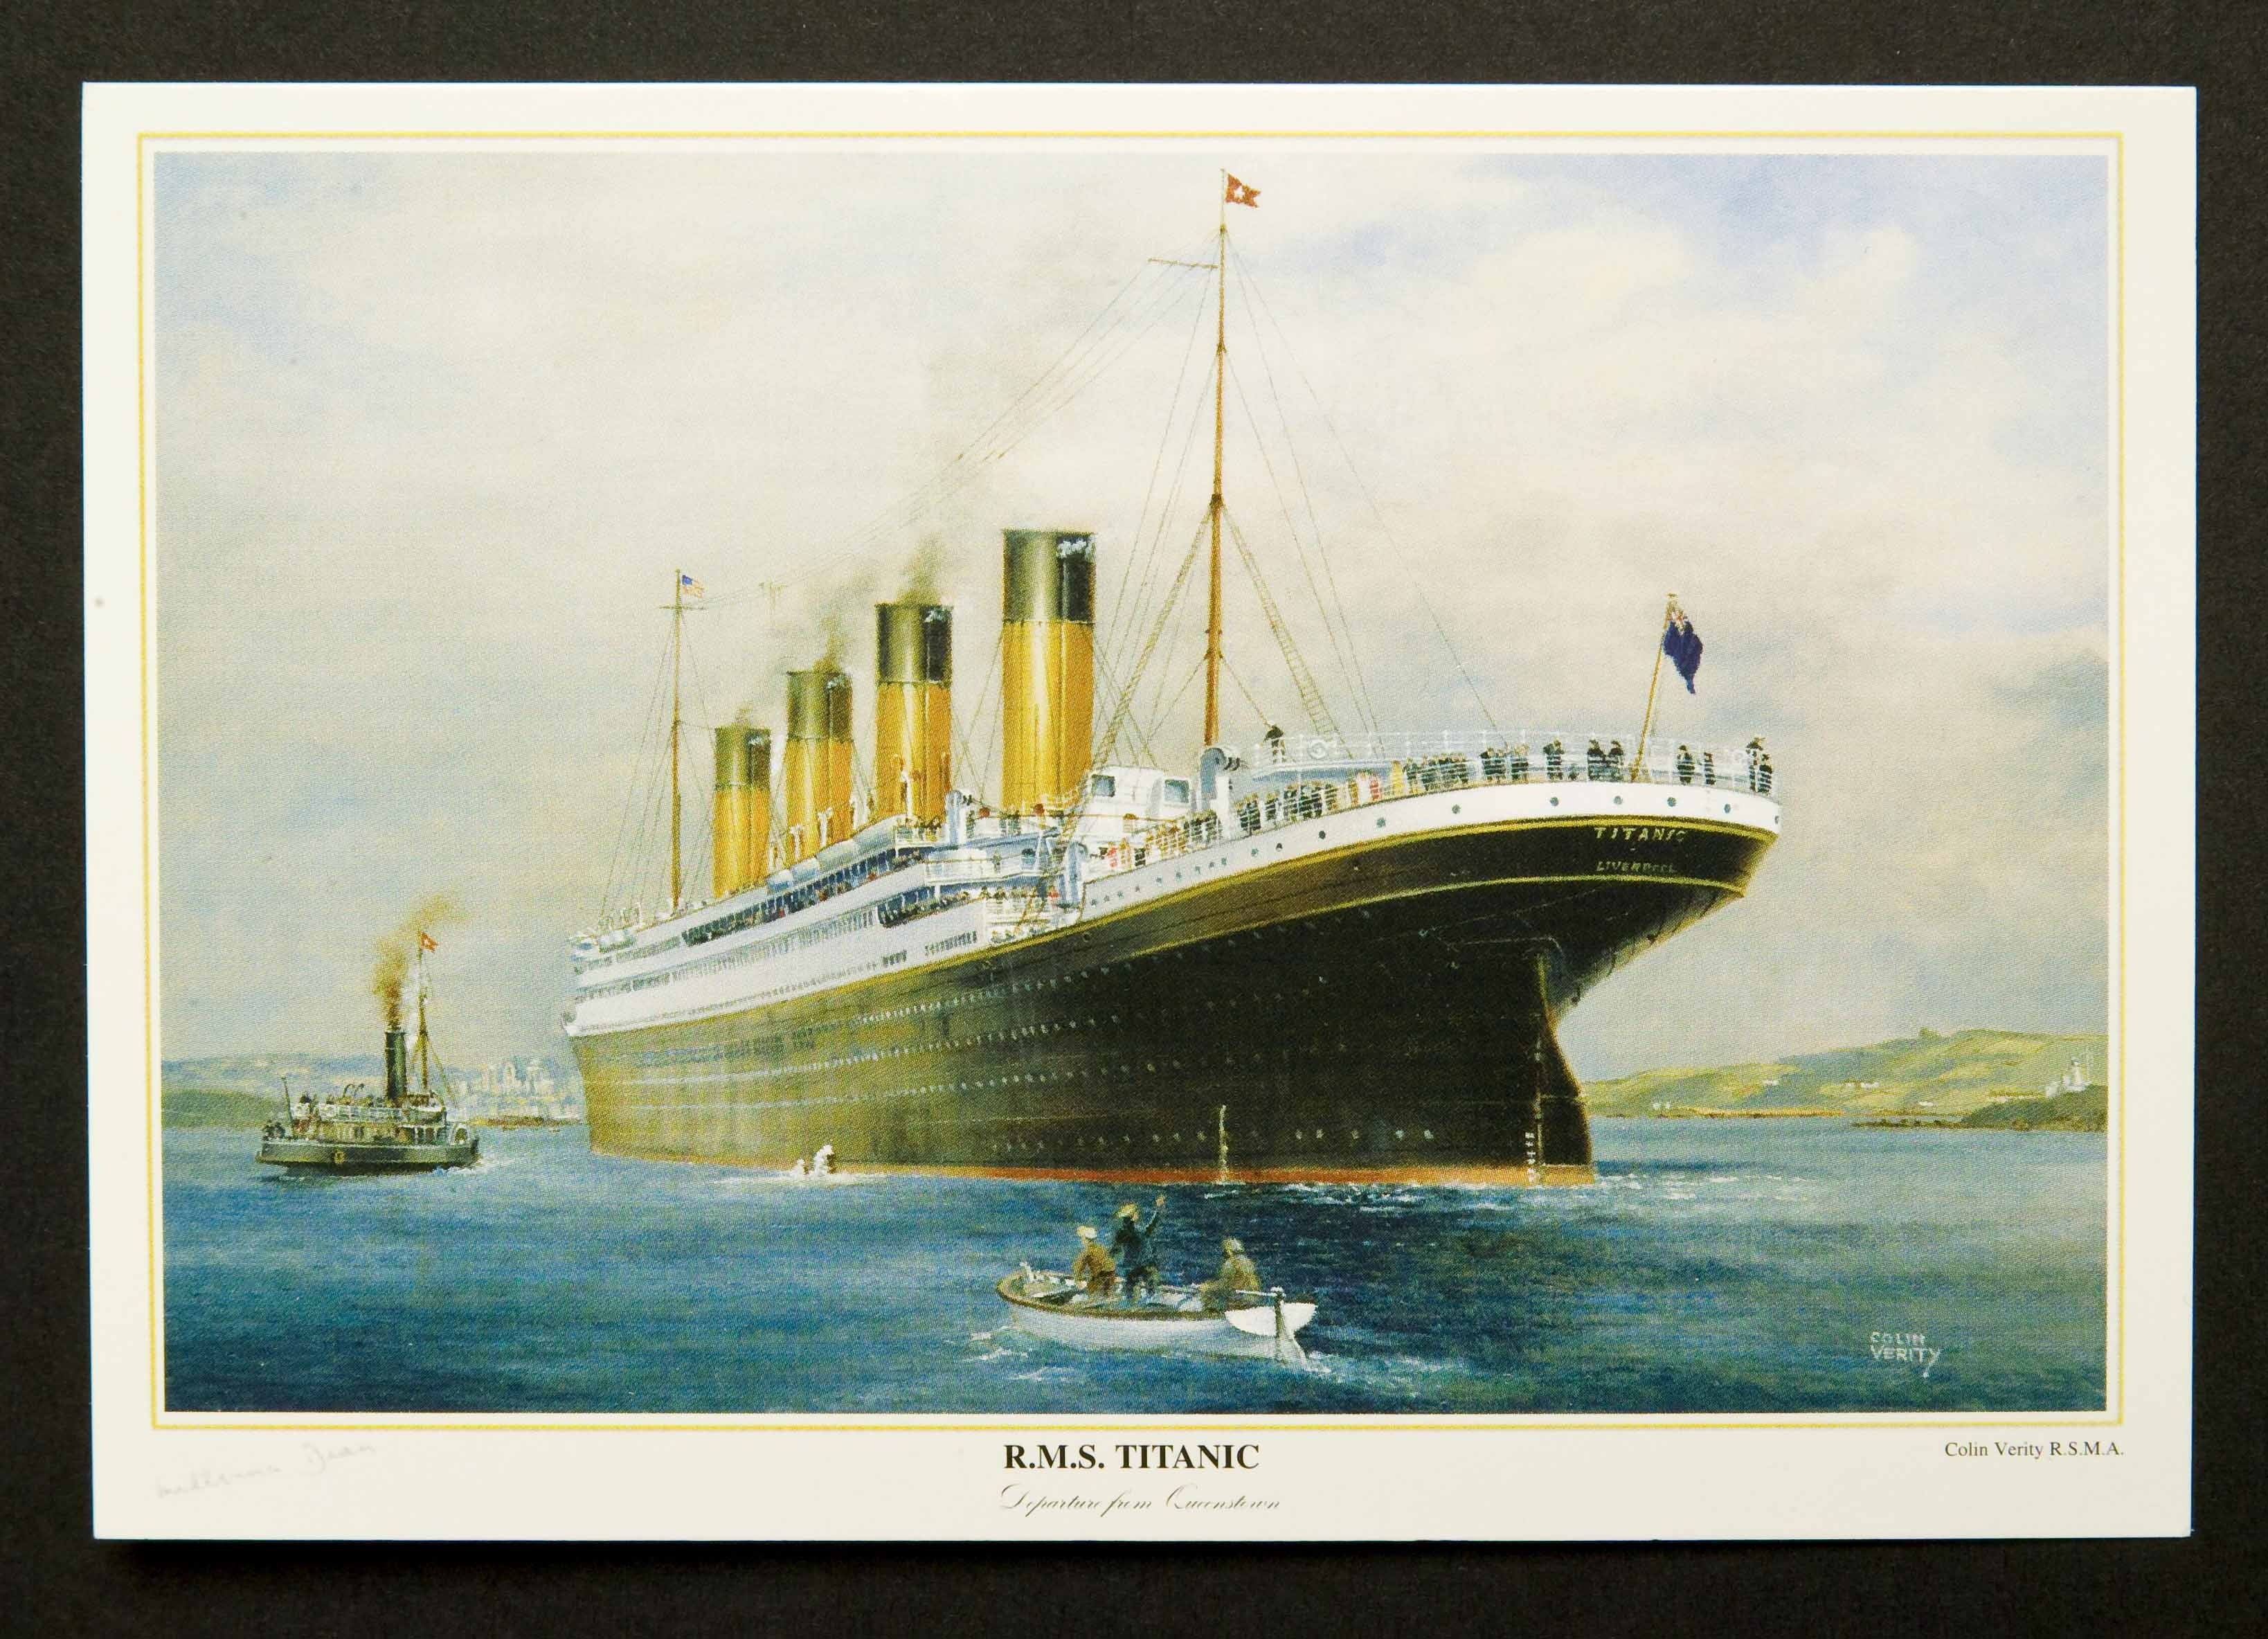 Titanic Queenstown A1 size Poster by Colin Verity